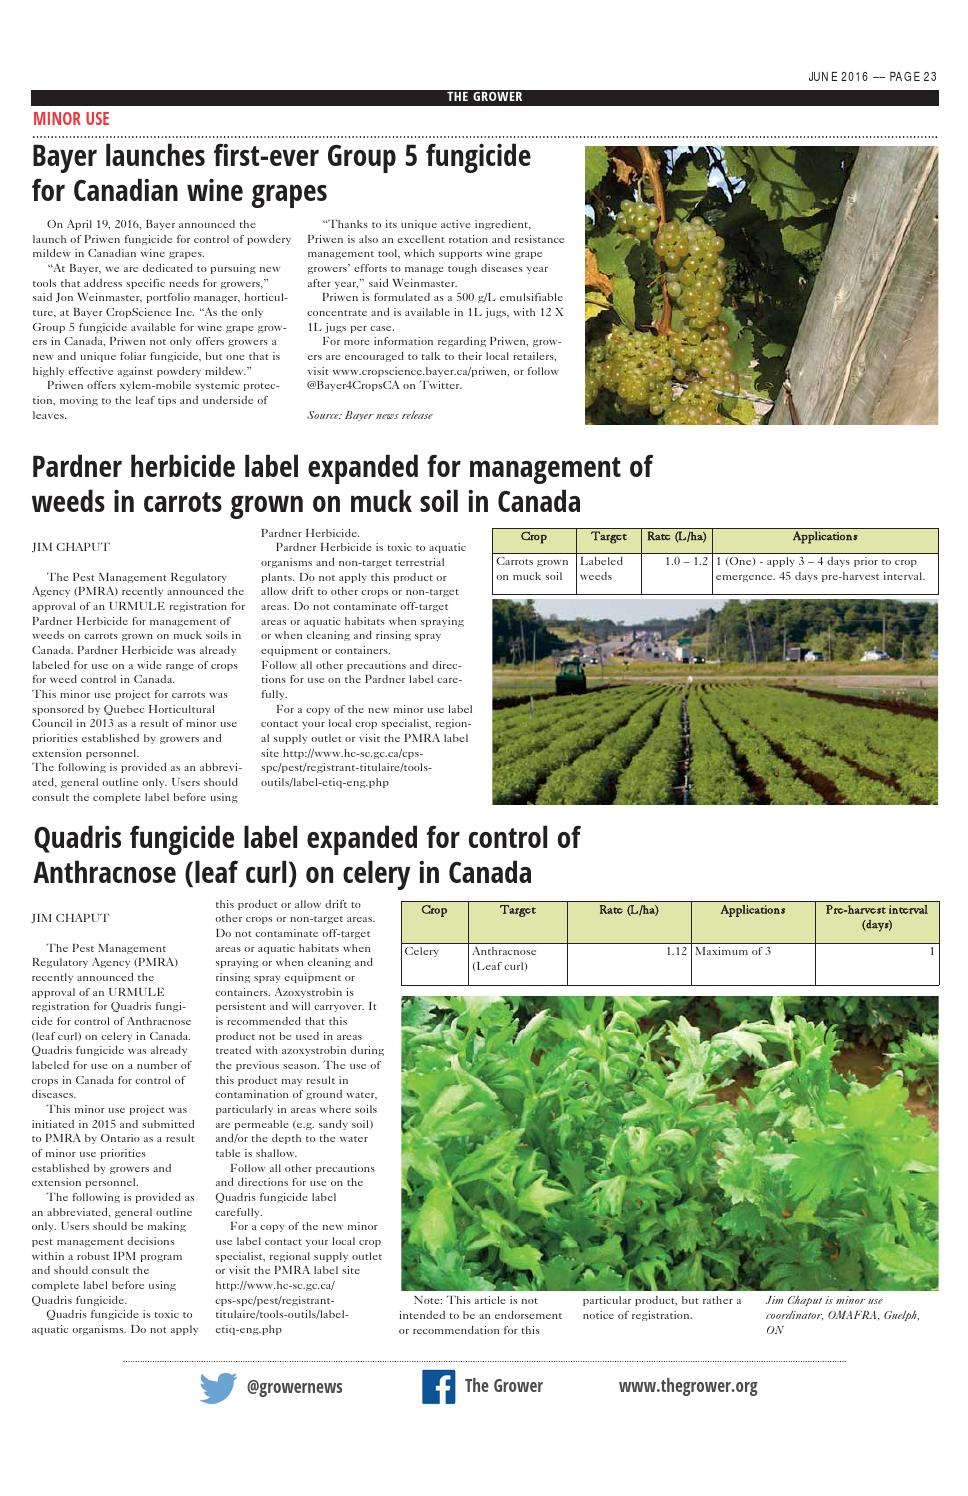 The Grower June 2016 by The Grower - issuu